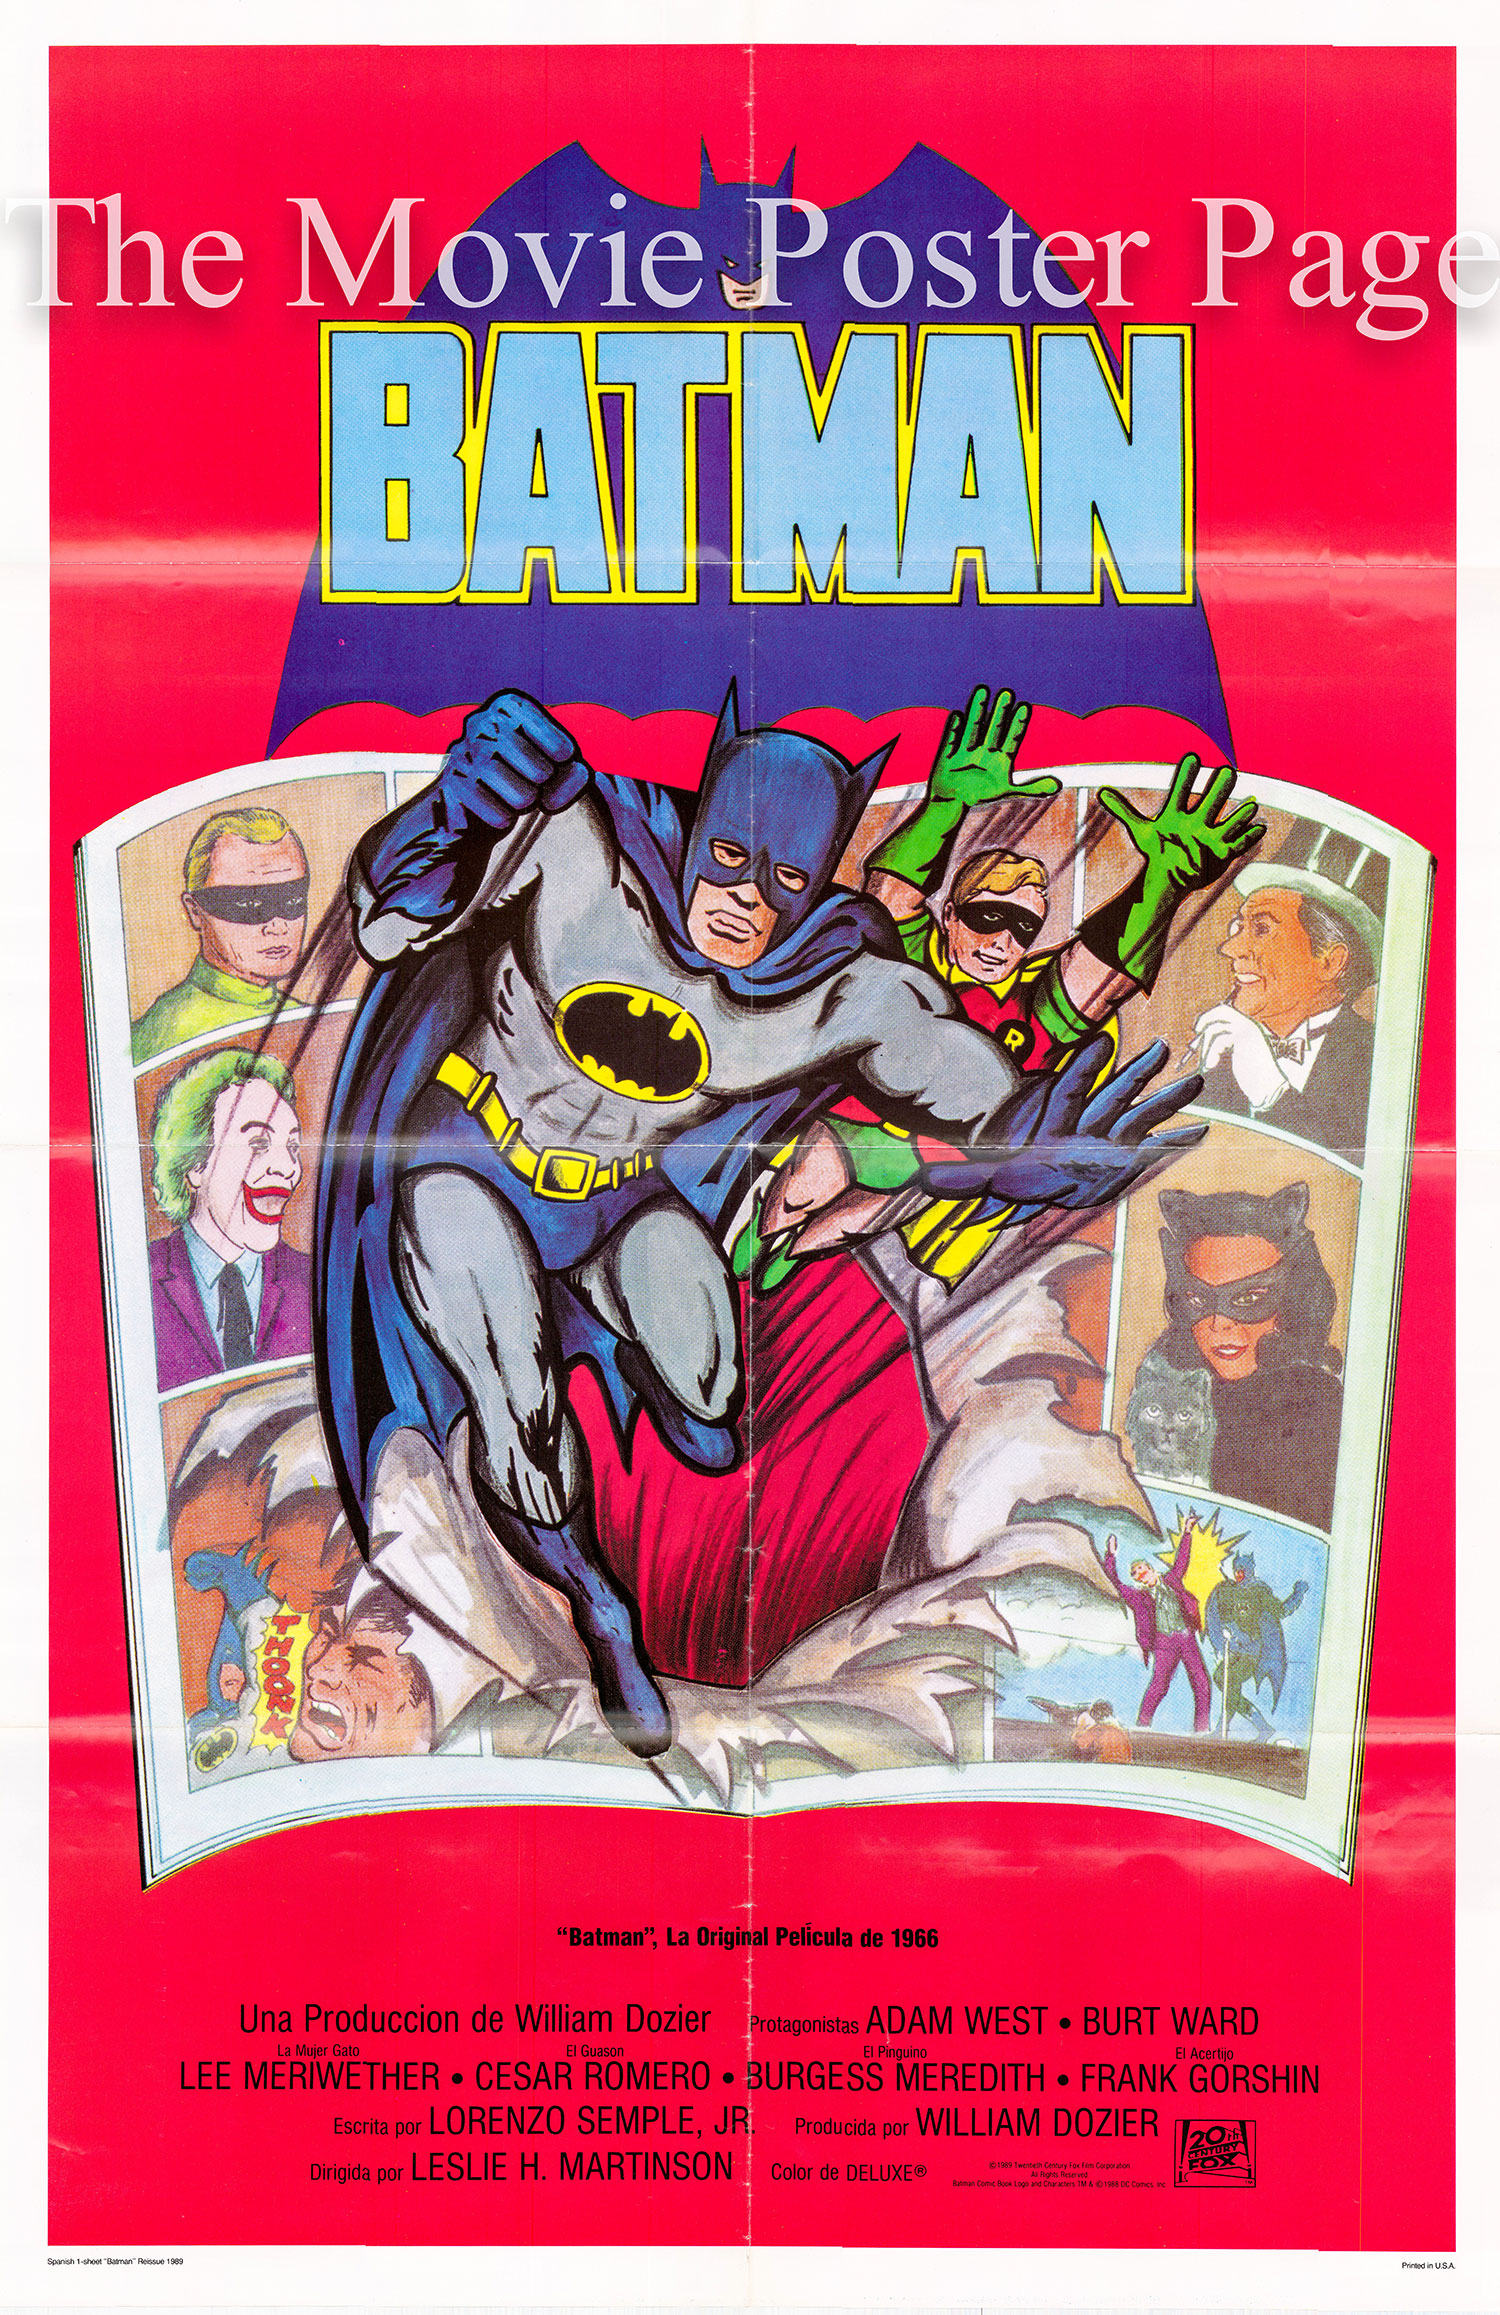 Pictured is a Spanish one-sheet poster for a 1979 rerelease of the 1966 Leslie H. Martinson film Batman starring Adam West as Batman.